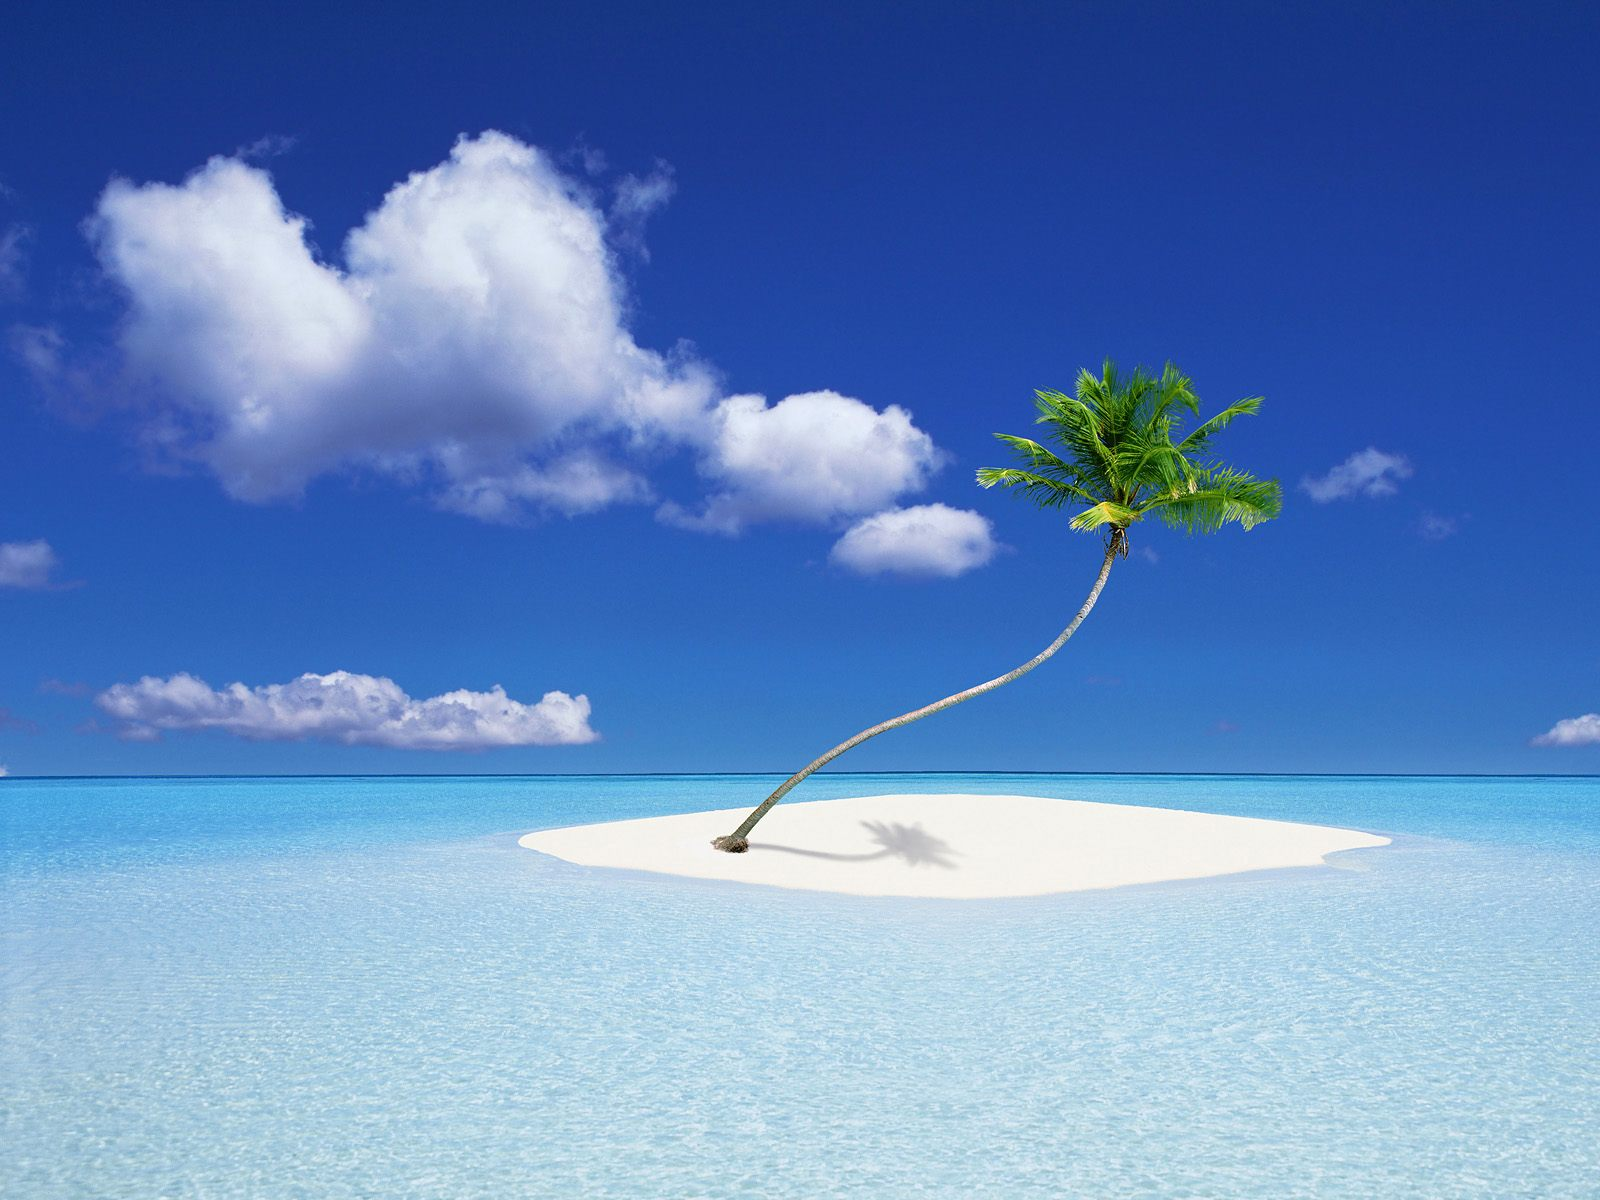 Island Holiday Wallpapers | HD Wallpapers